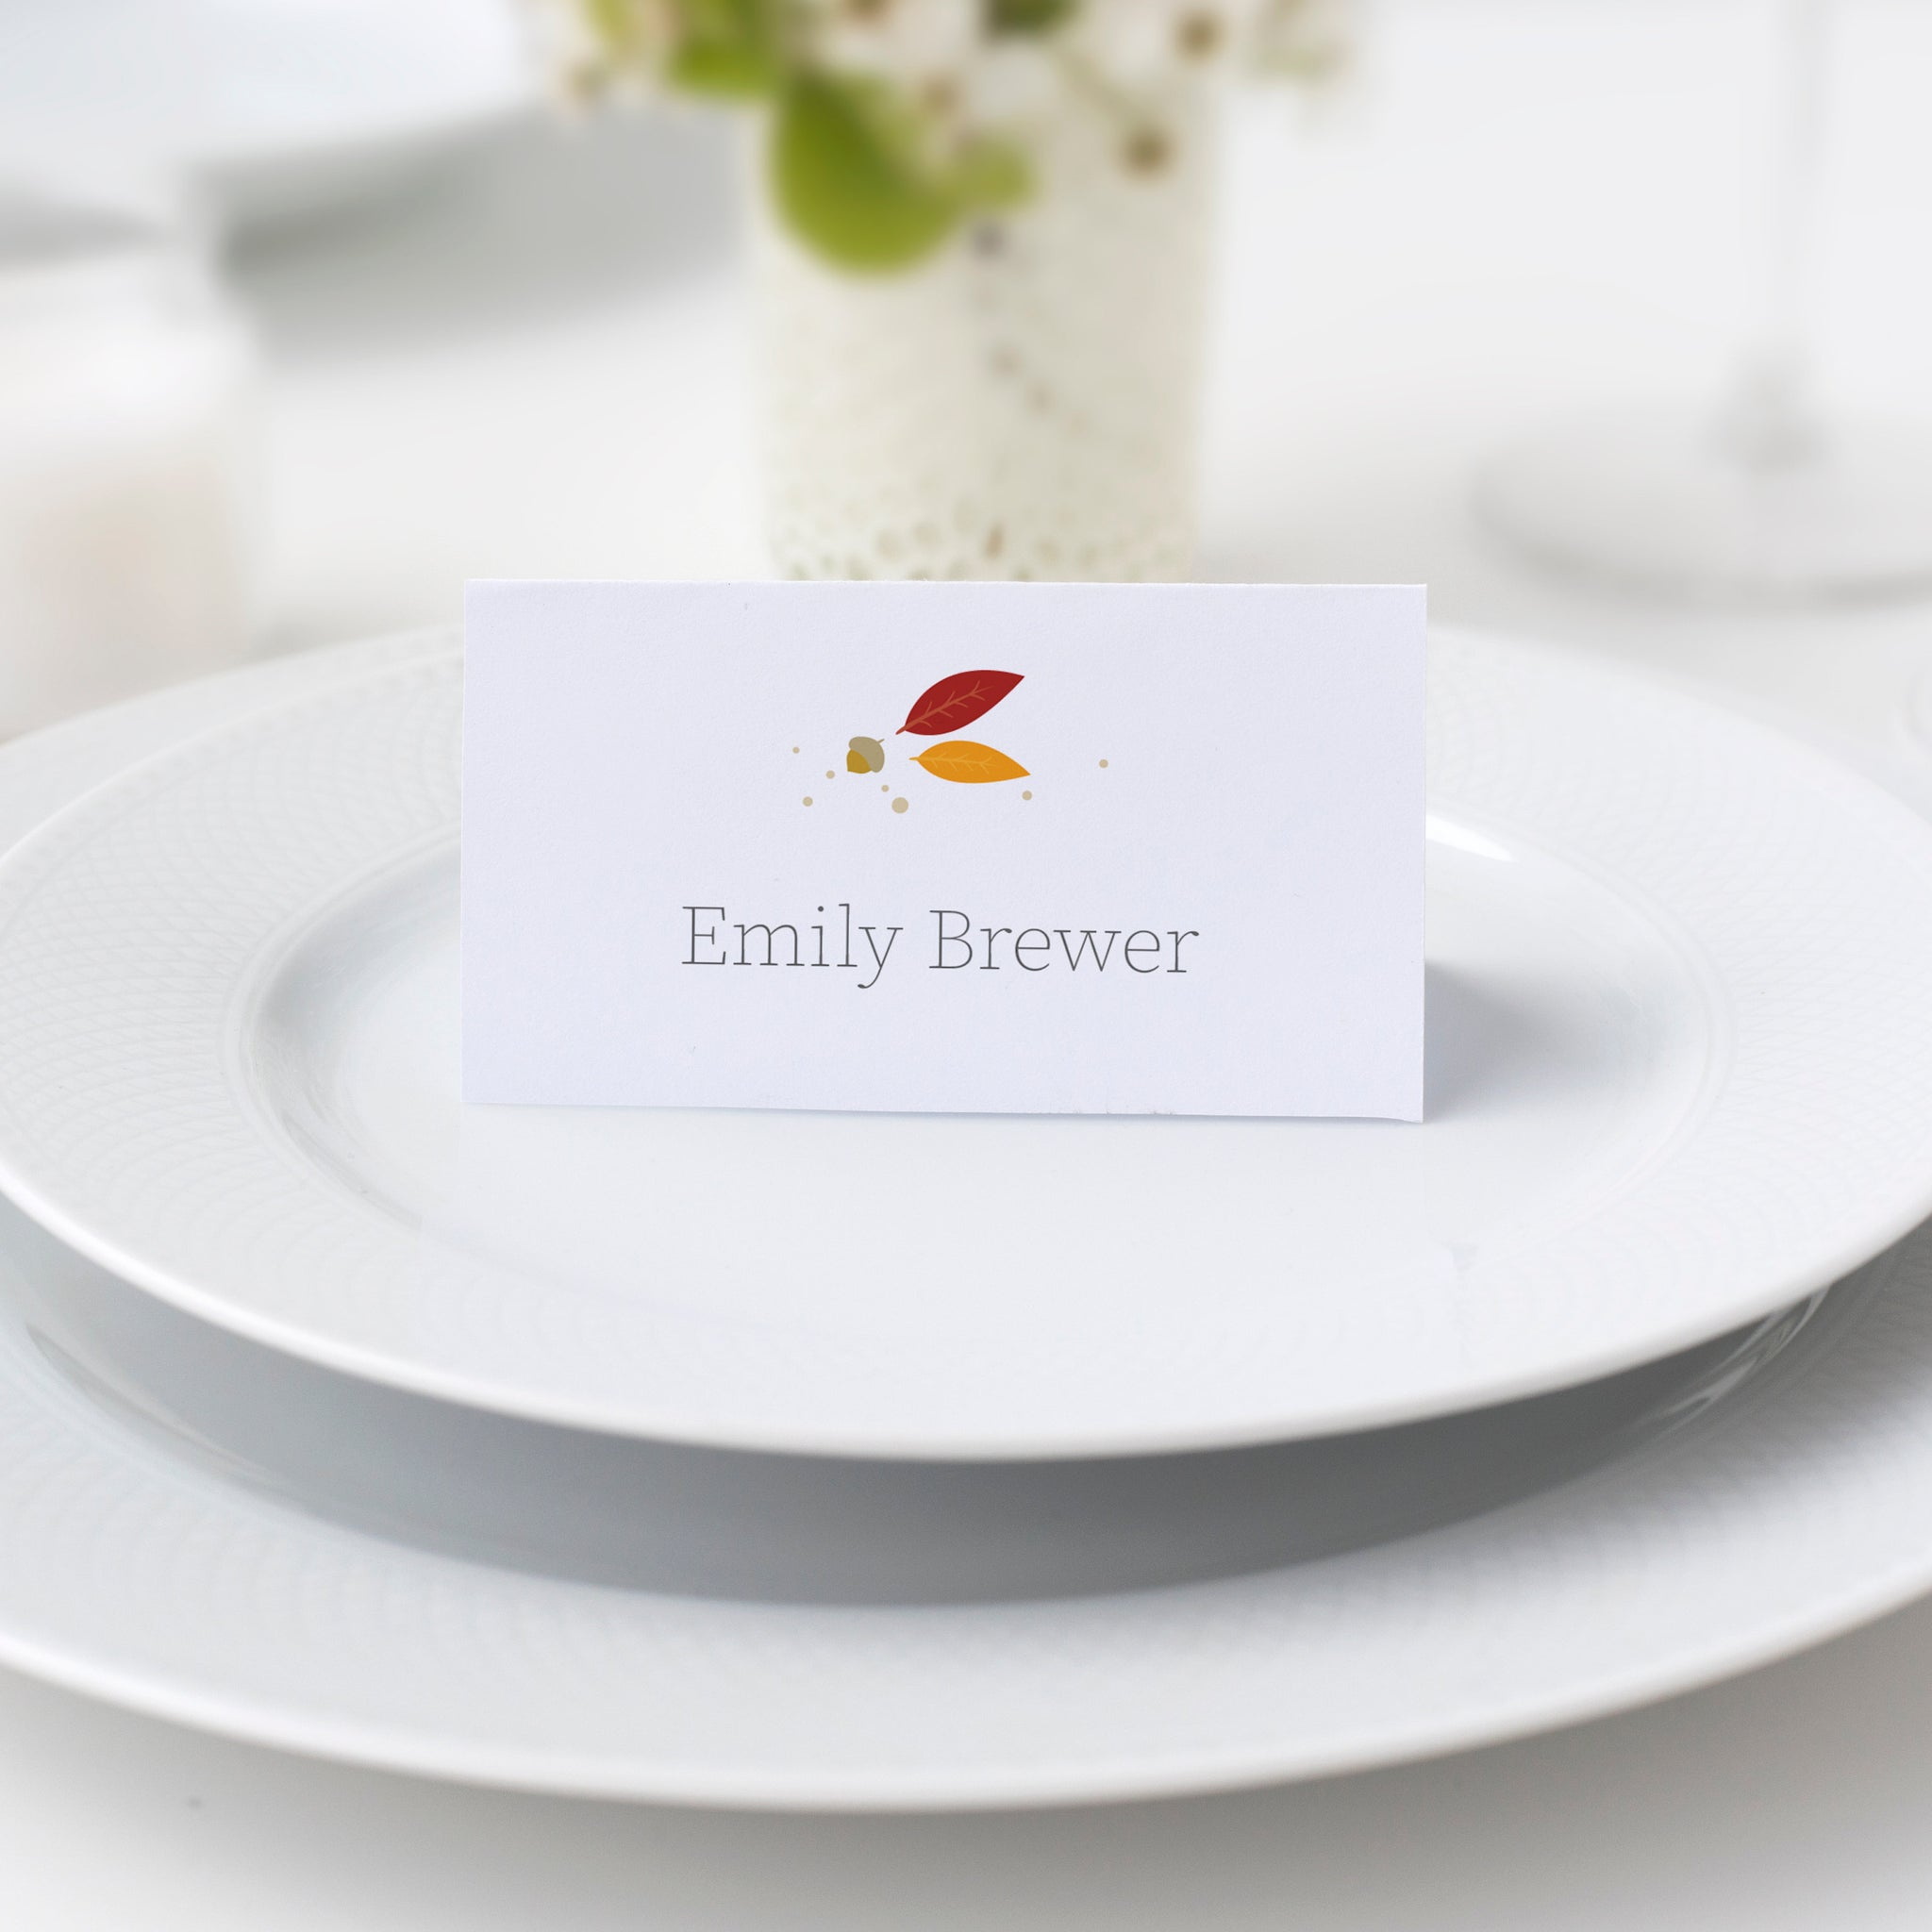 Thanksgiving Place Card Template, Thanksgiving Table Decor, Thanksgiving Dinner Decor, Thanksgiving Decorations, DIGITAL DOWNLOAD - FL100 - @PlumPolkaDot